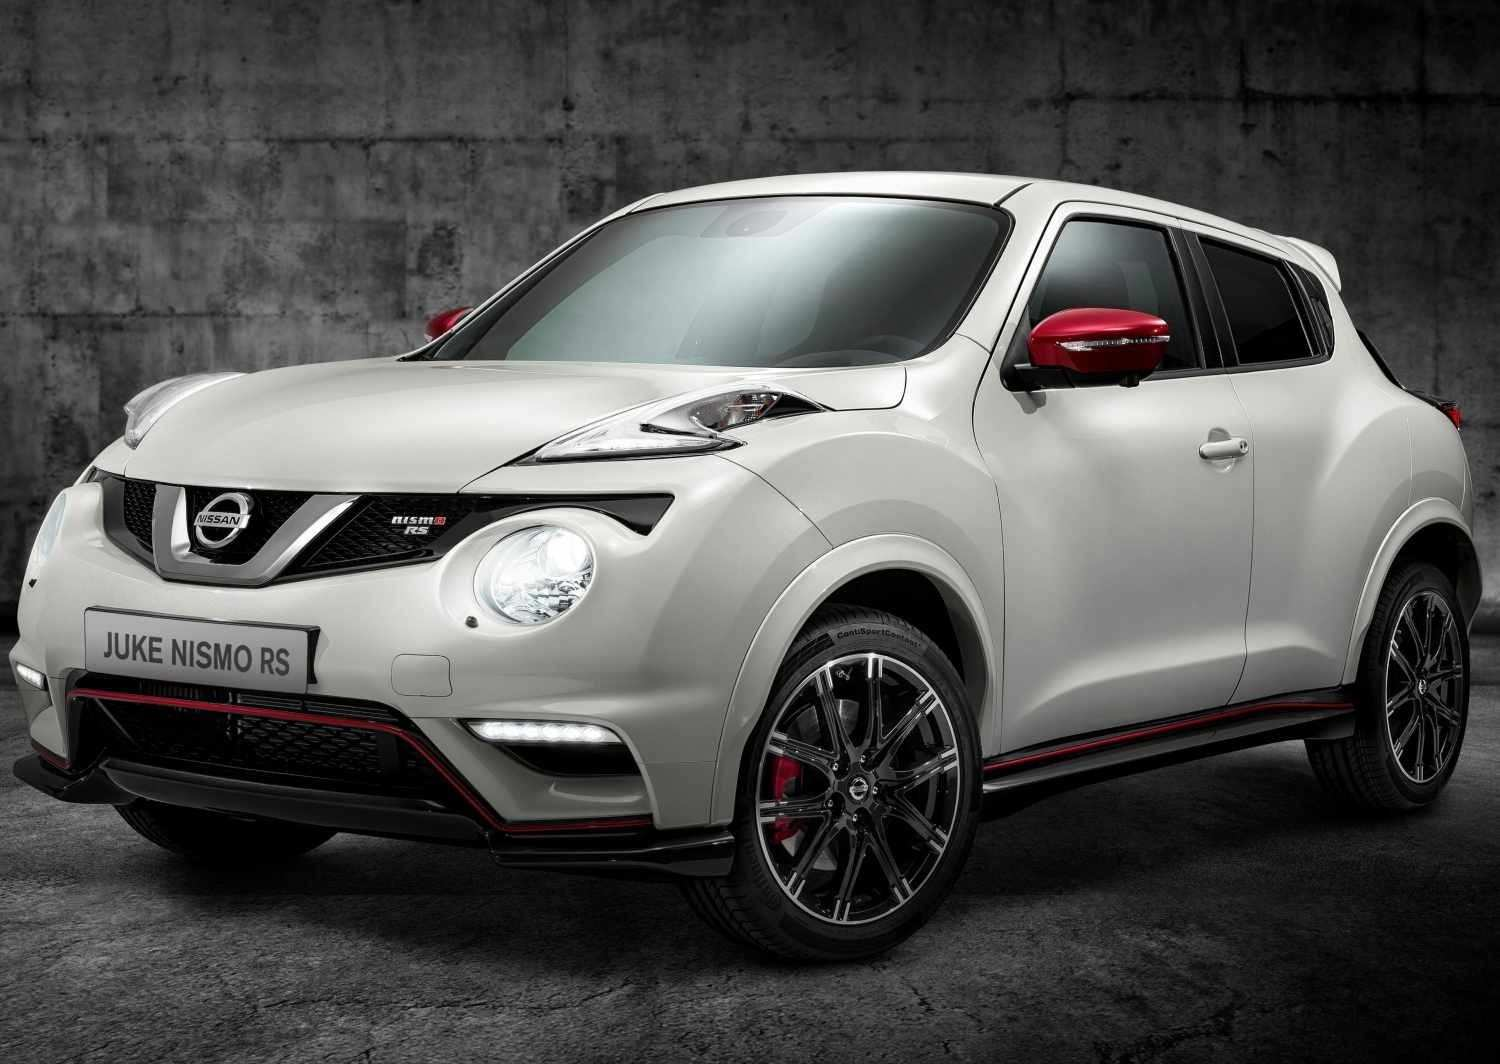 26 All New Nissan Juke 2019 Release Date Exterior And Interior